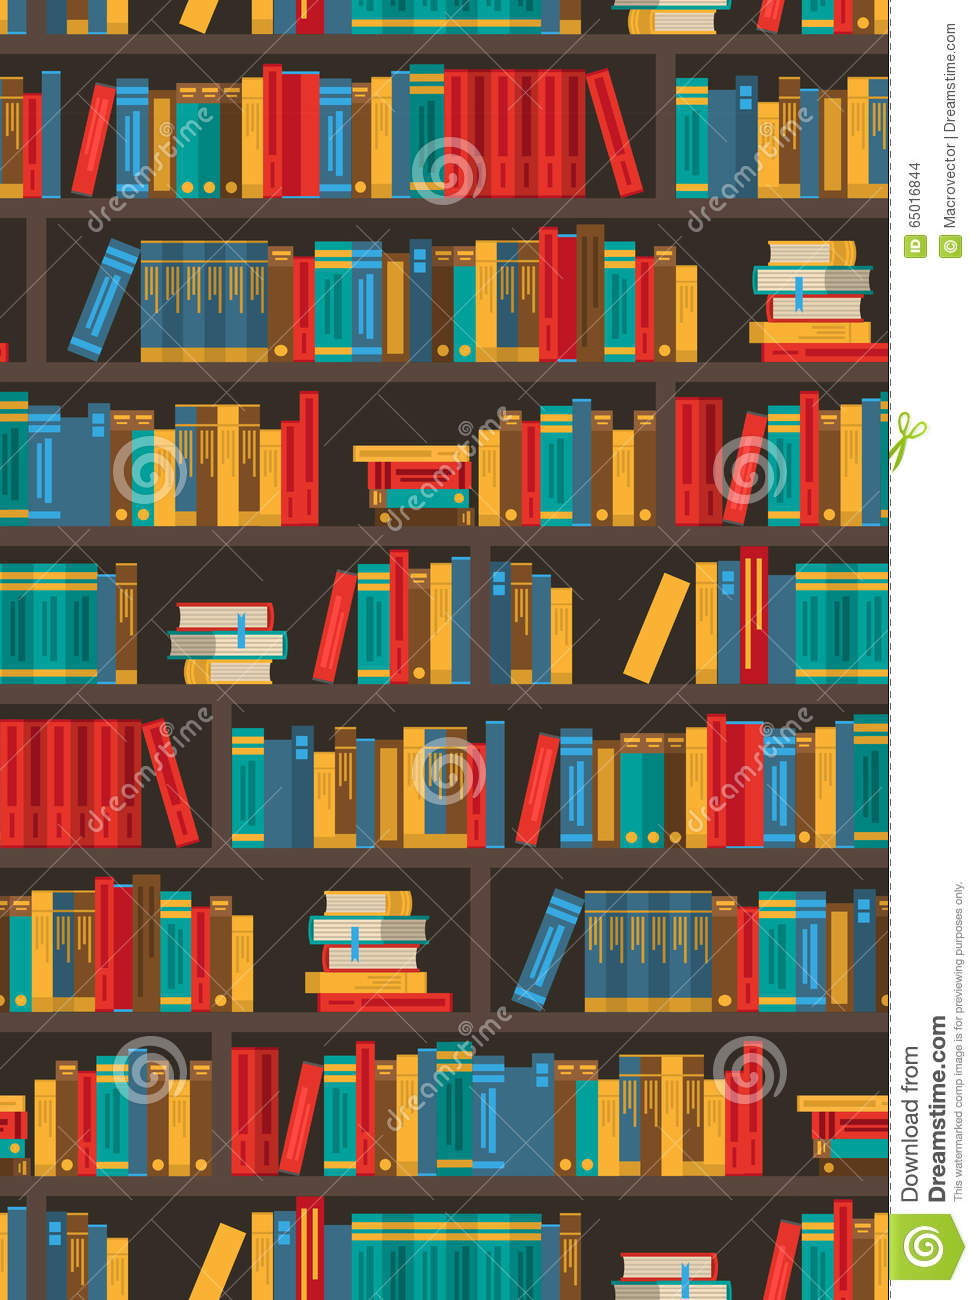 book shelves dtcorative colorful icon poster stock vector colorful built in bookshelves White Bookshelves